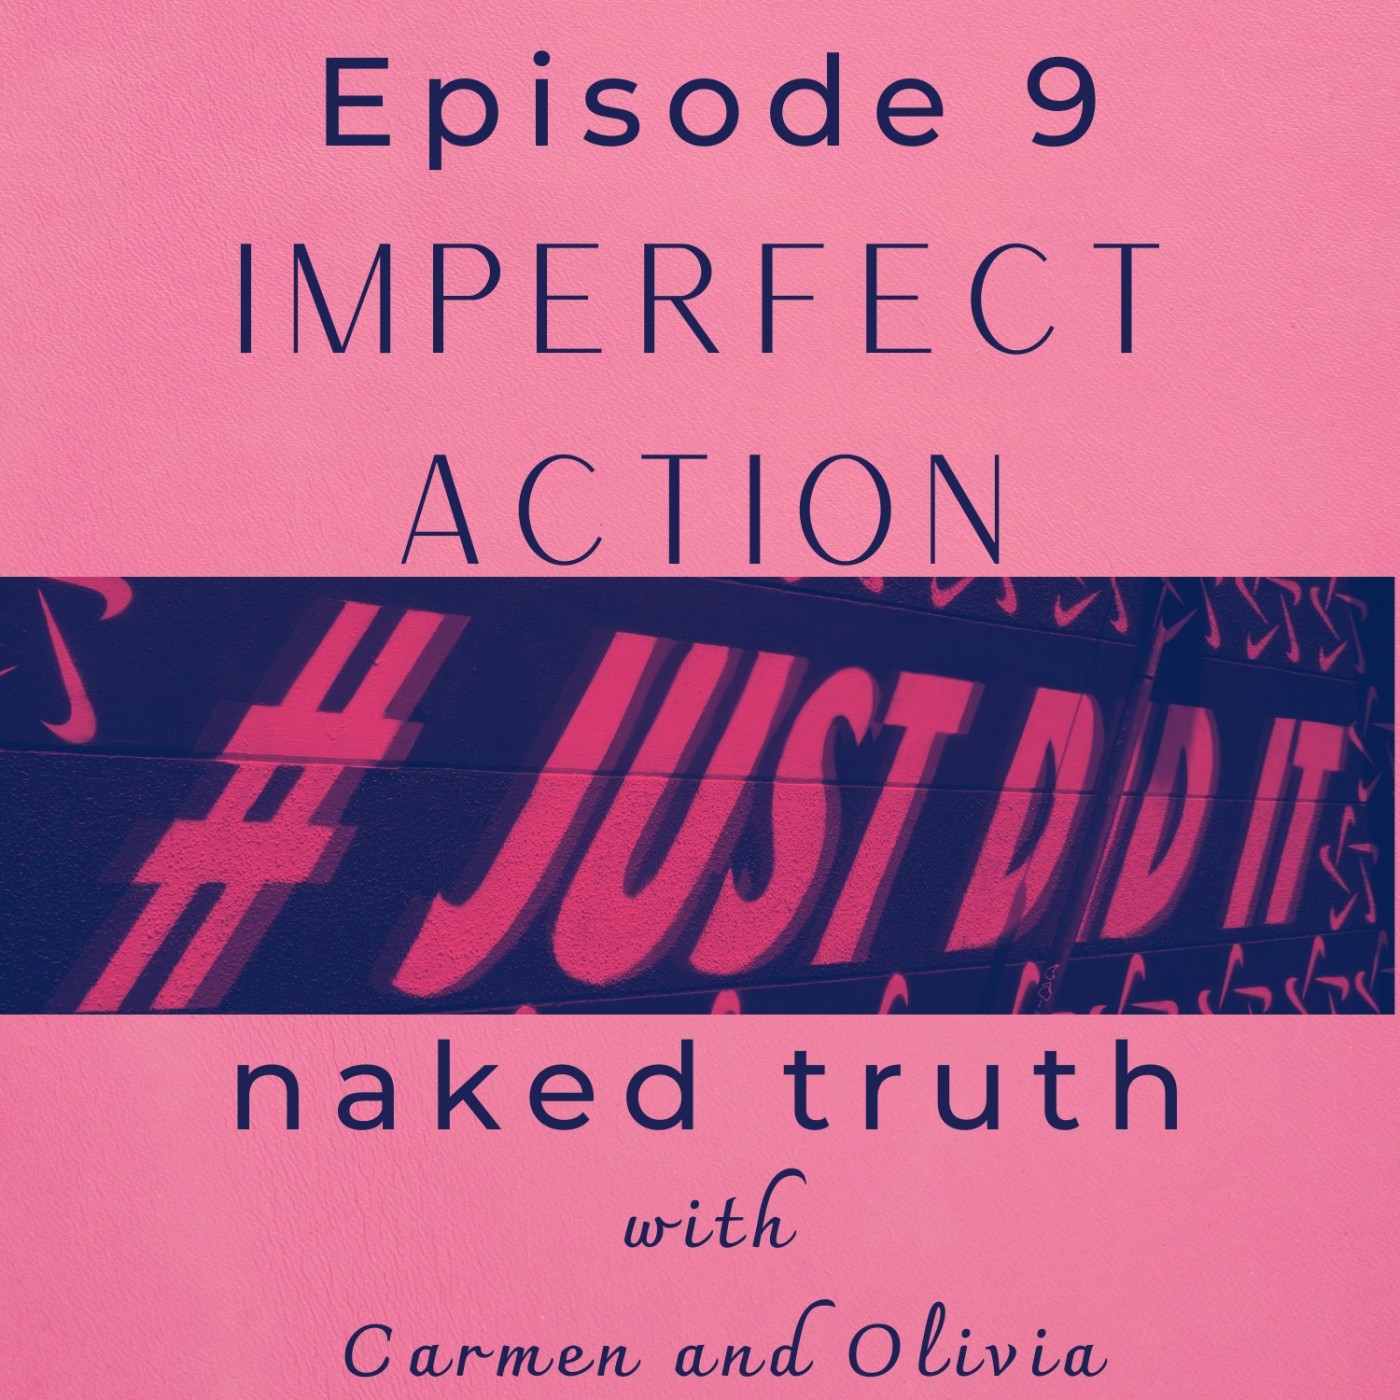 Episode 9: Imperfect Action